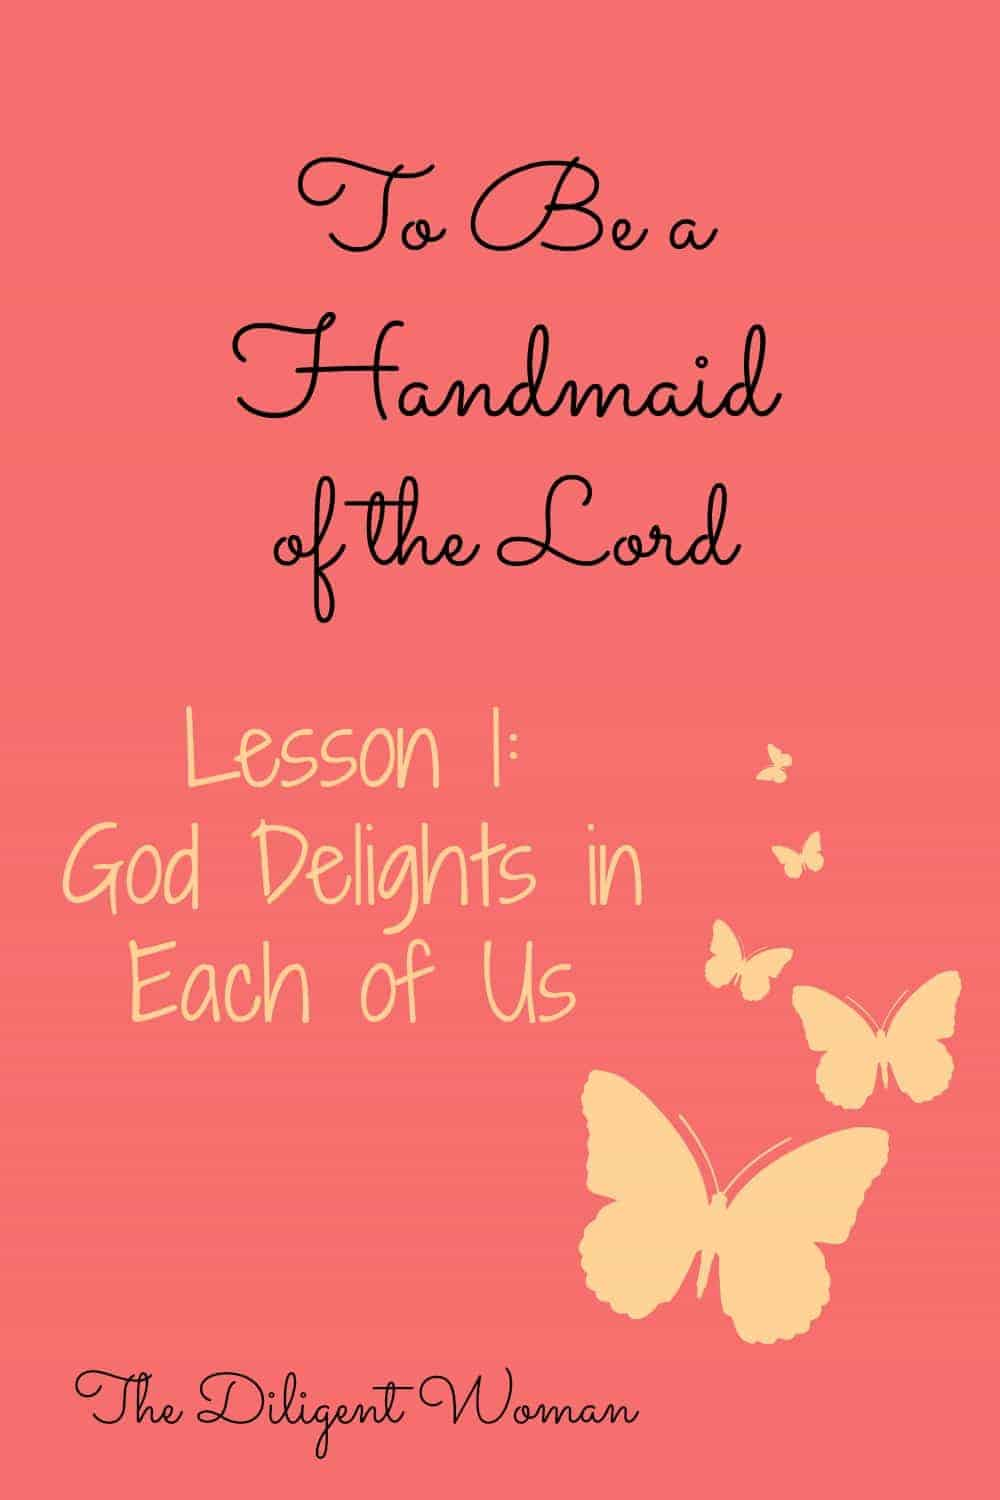 God Delights in Each of Us